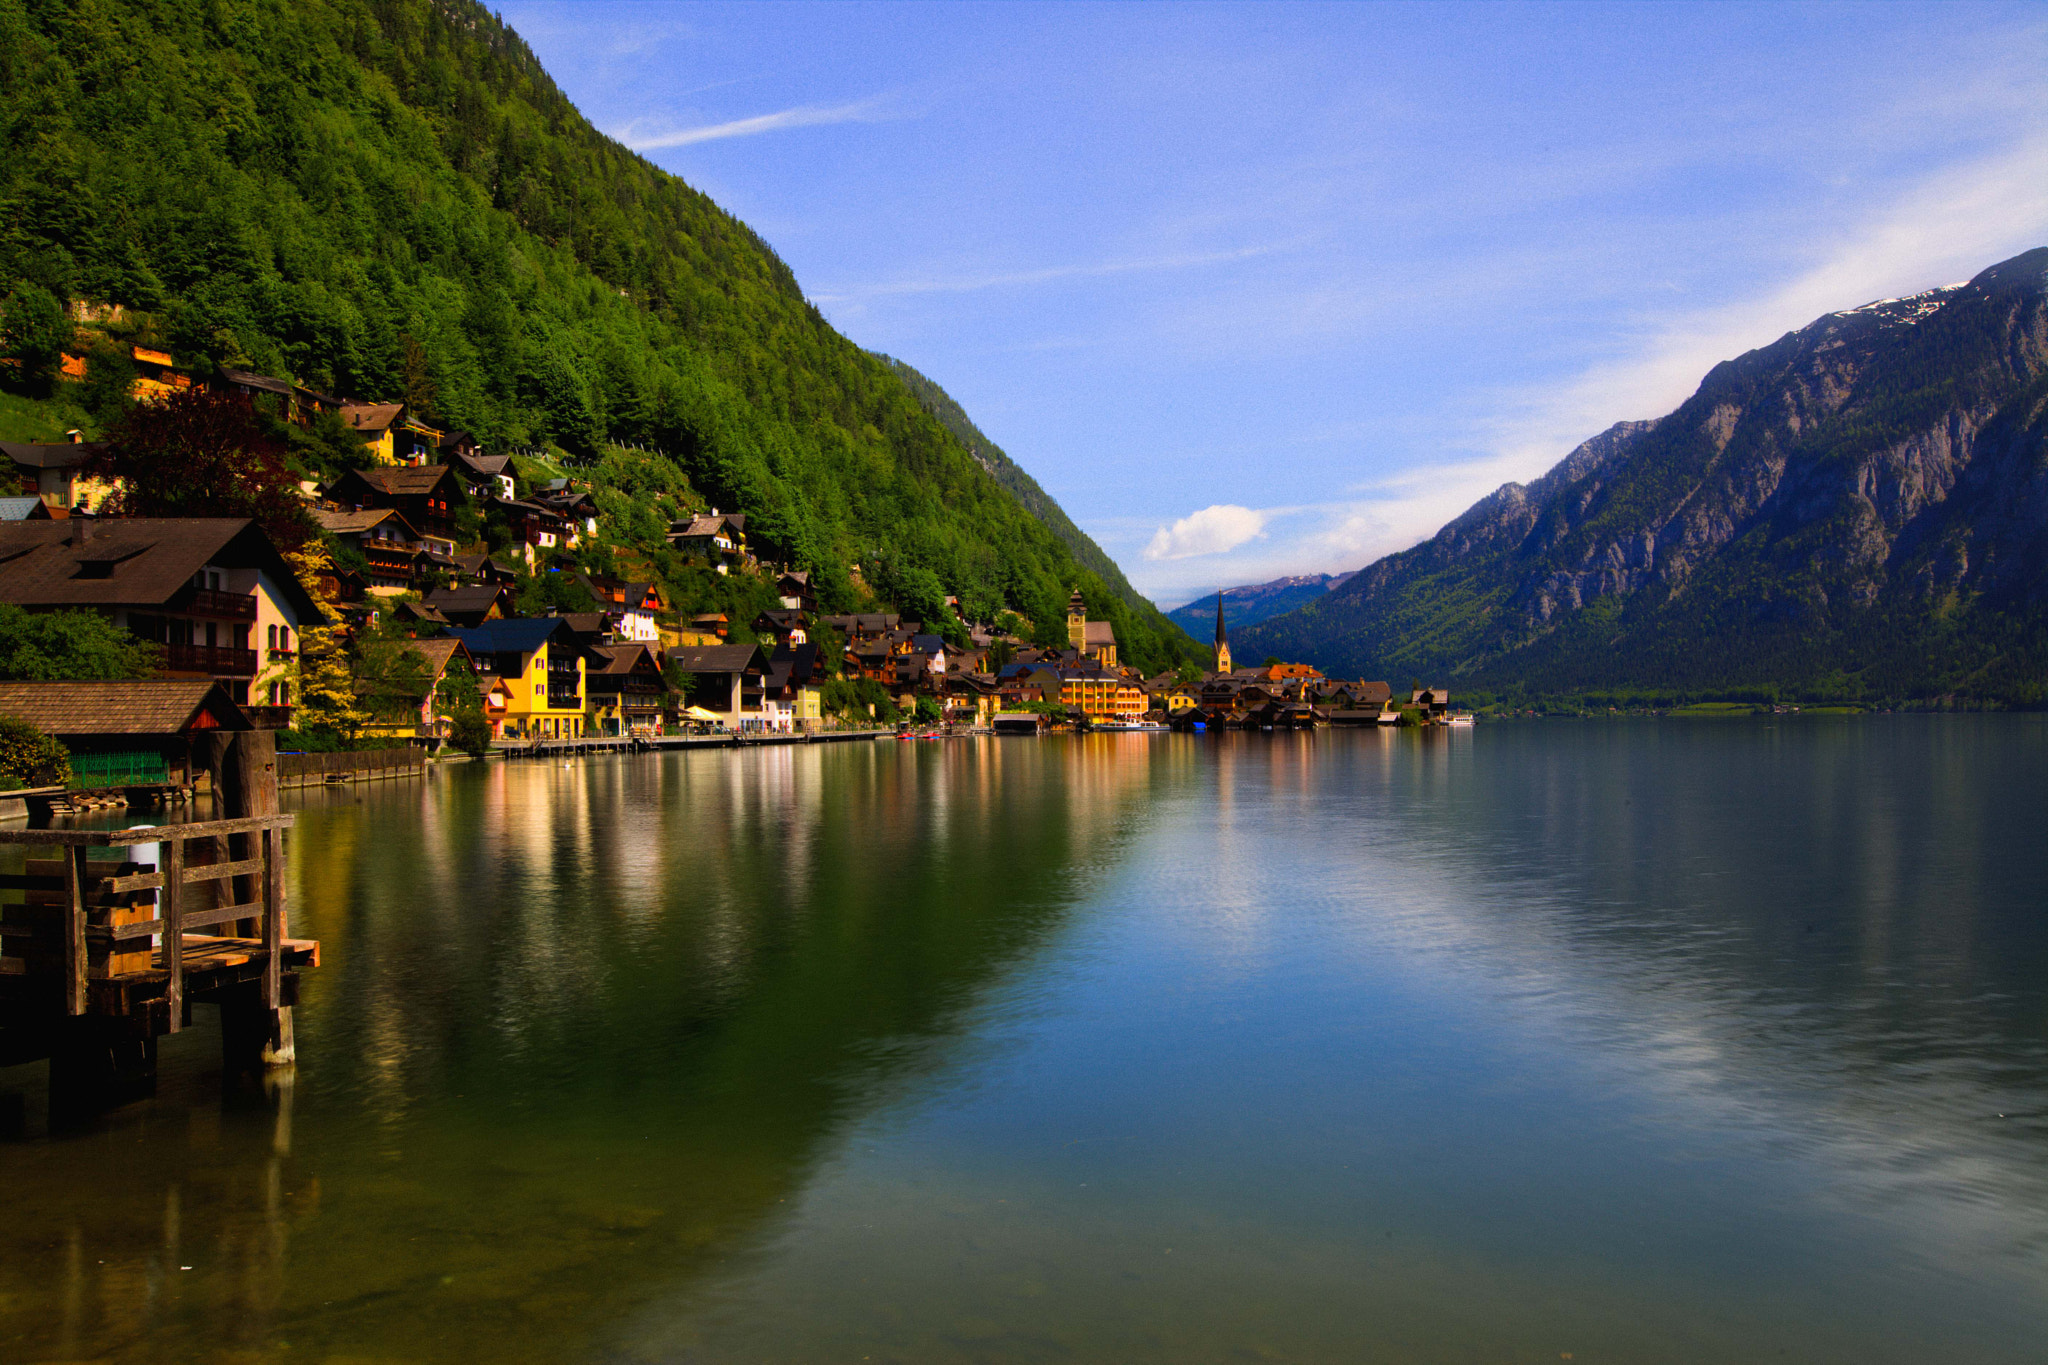 Photograph Hallstatt by Brian Huang on 500px